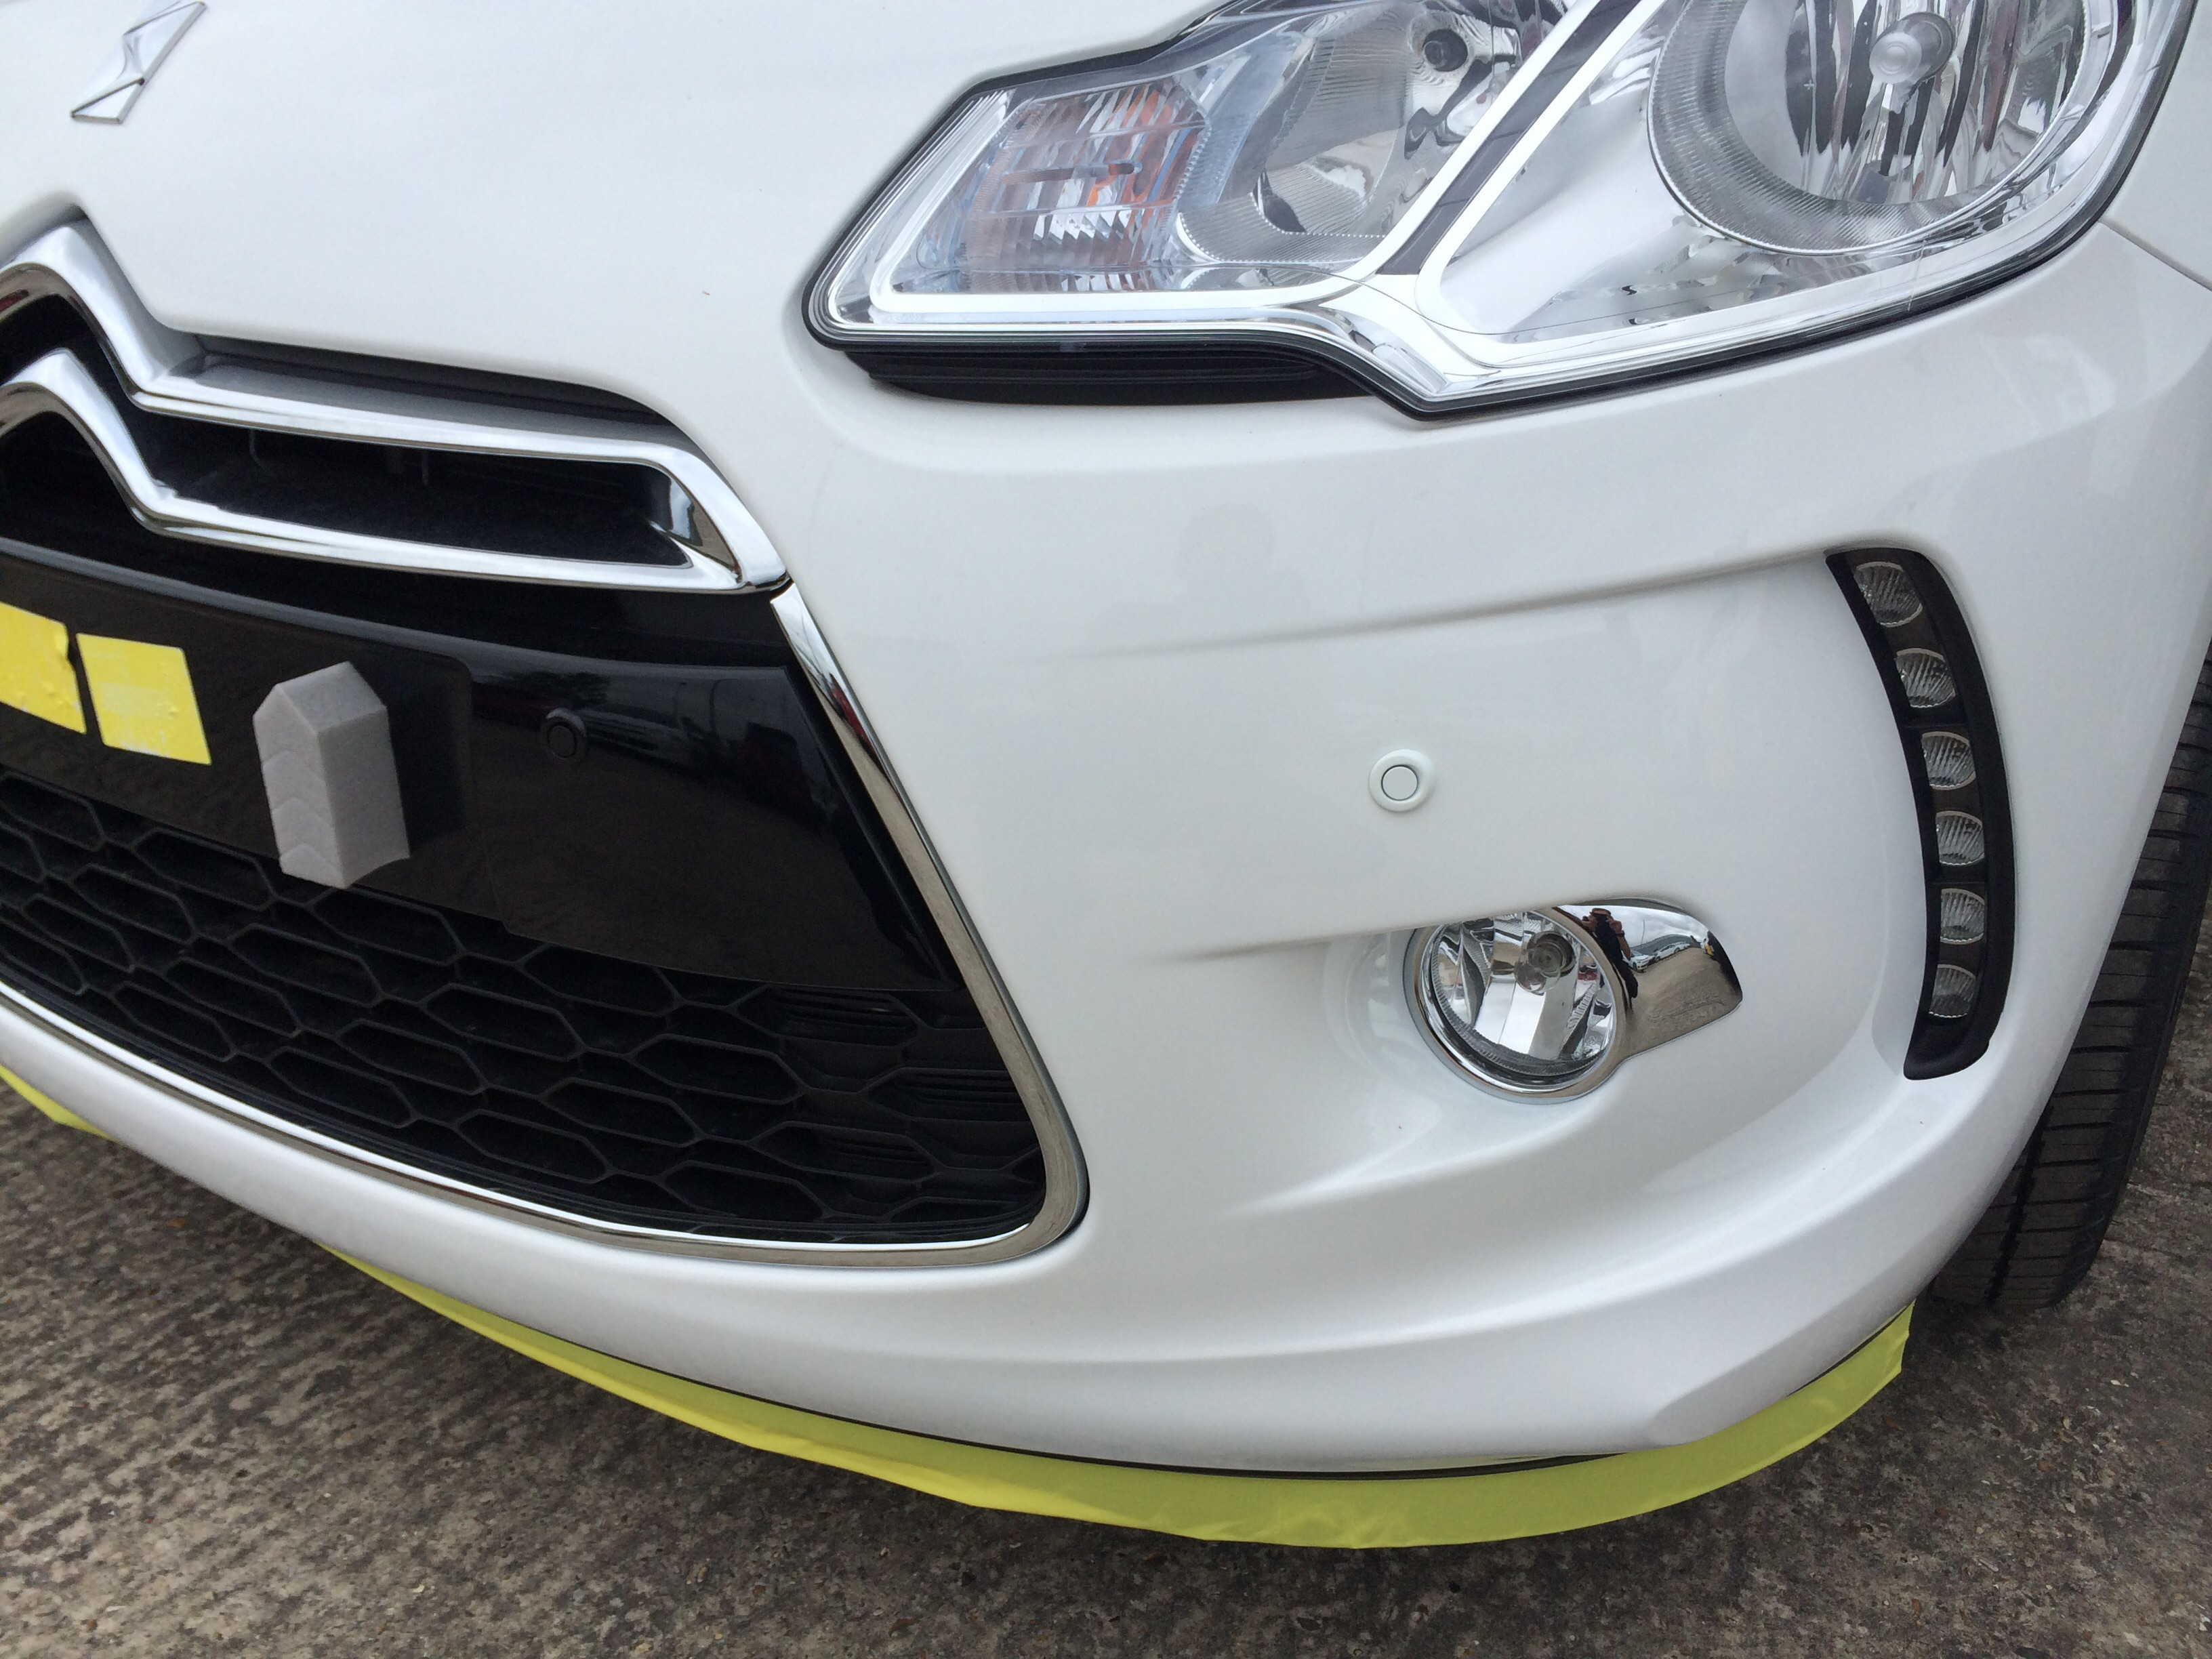 Mercedes Vito Van Reversing Camera In Car Additions